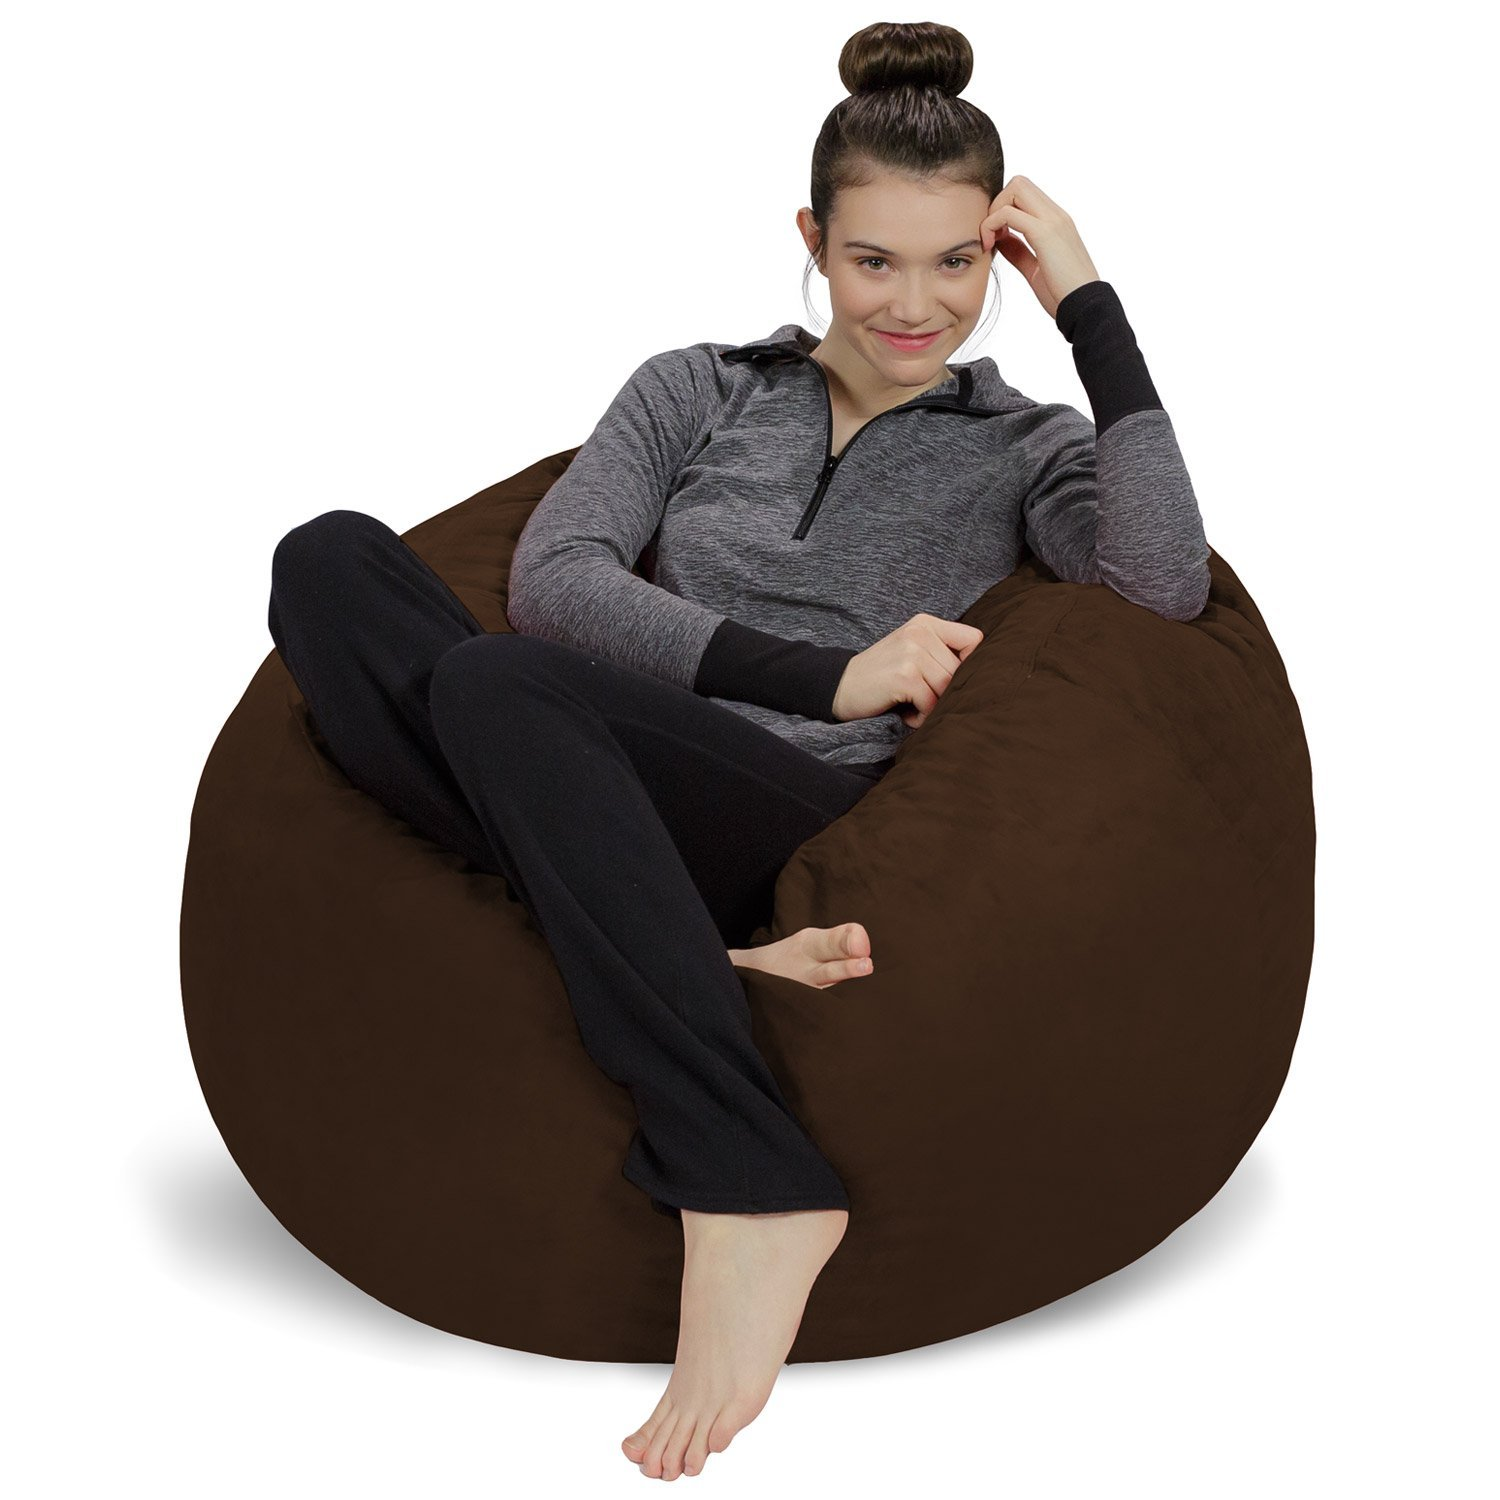 Sofa Sack - Plush, Ultra Soft Bean Bag Chair - Memory Foam Bean Bag Chair with Microsuede Cover - Stuffed Foam Filled Furniture and Accessories for Dorm Room - Chocolate 3'